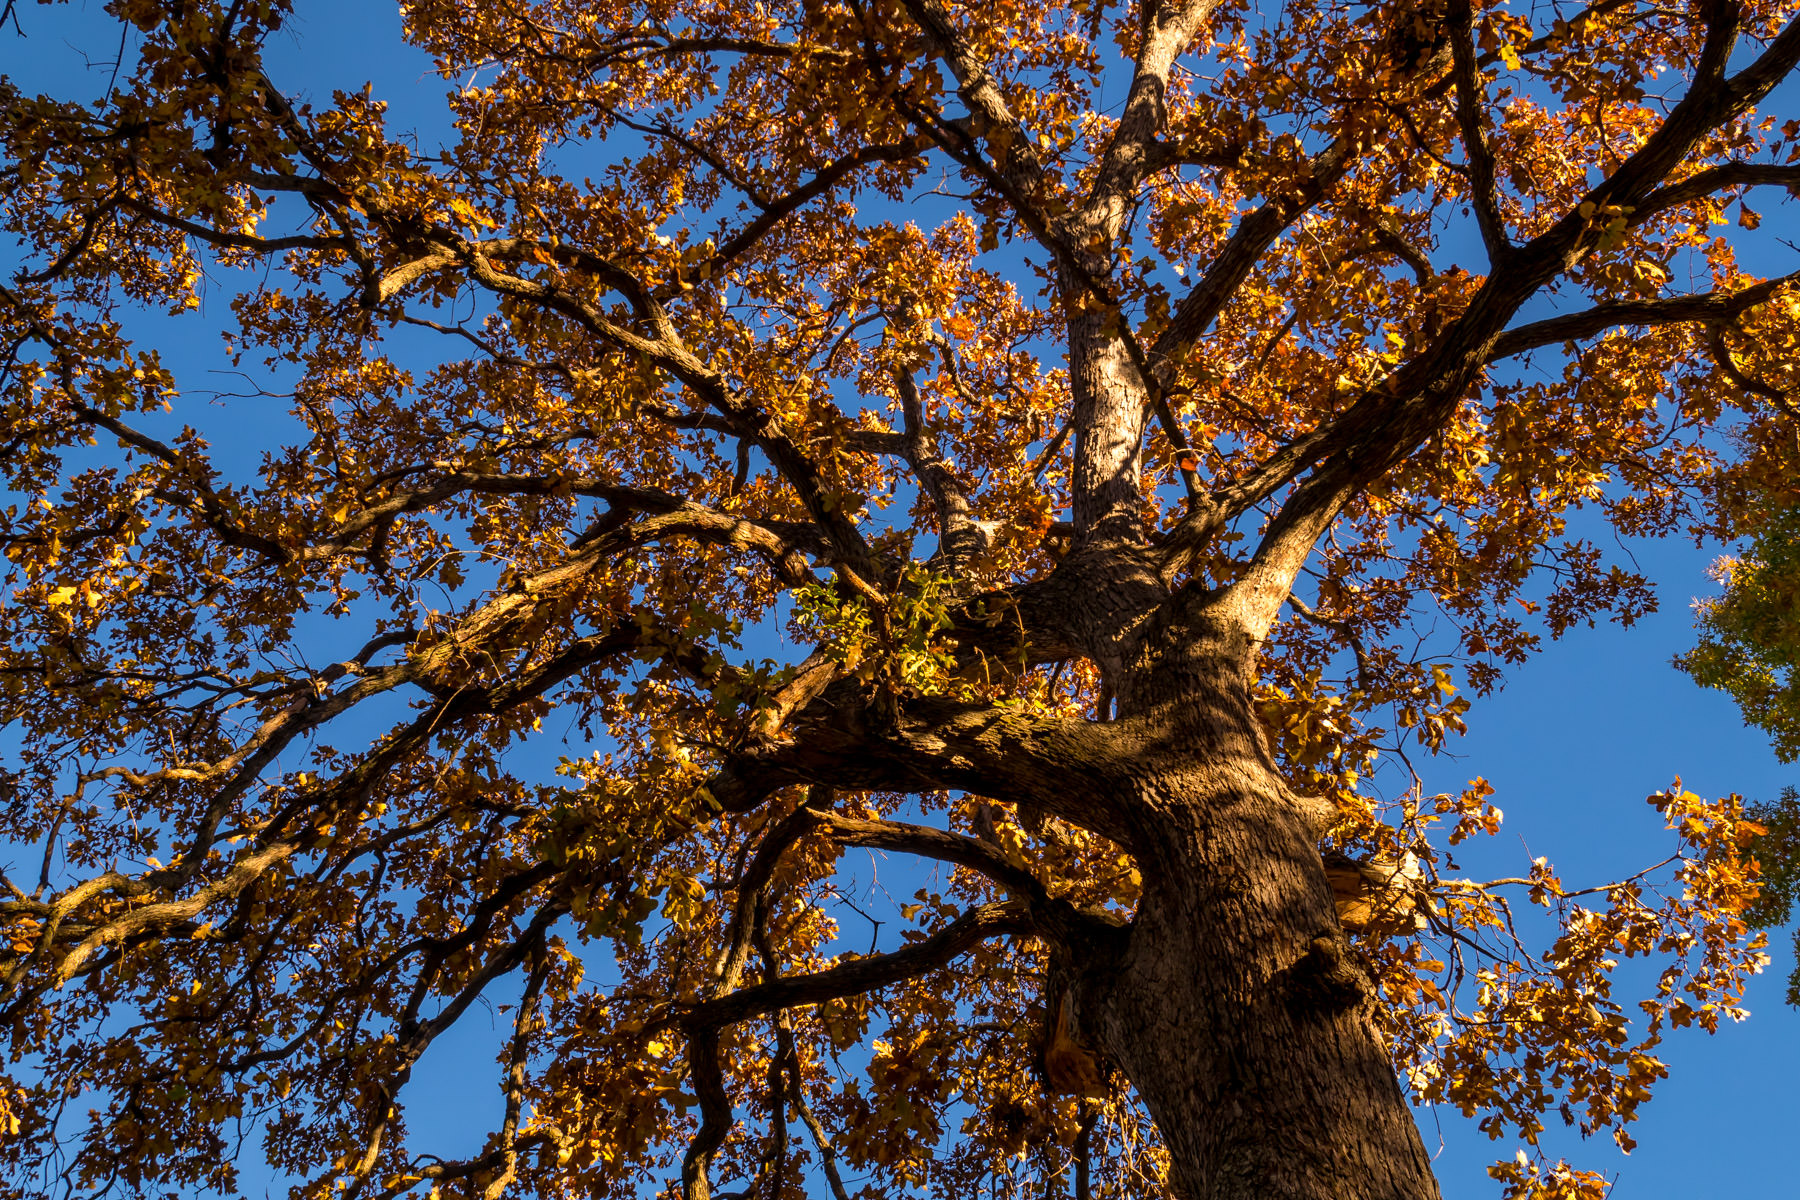 A tree reaches into the crisp Autumn sky at Tyler, Texas' Bergfeld Park.